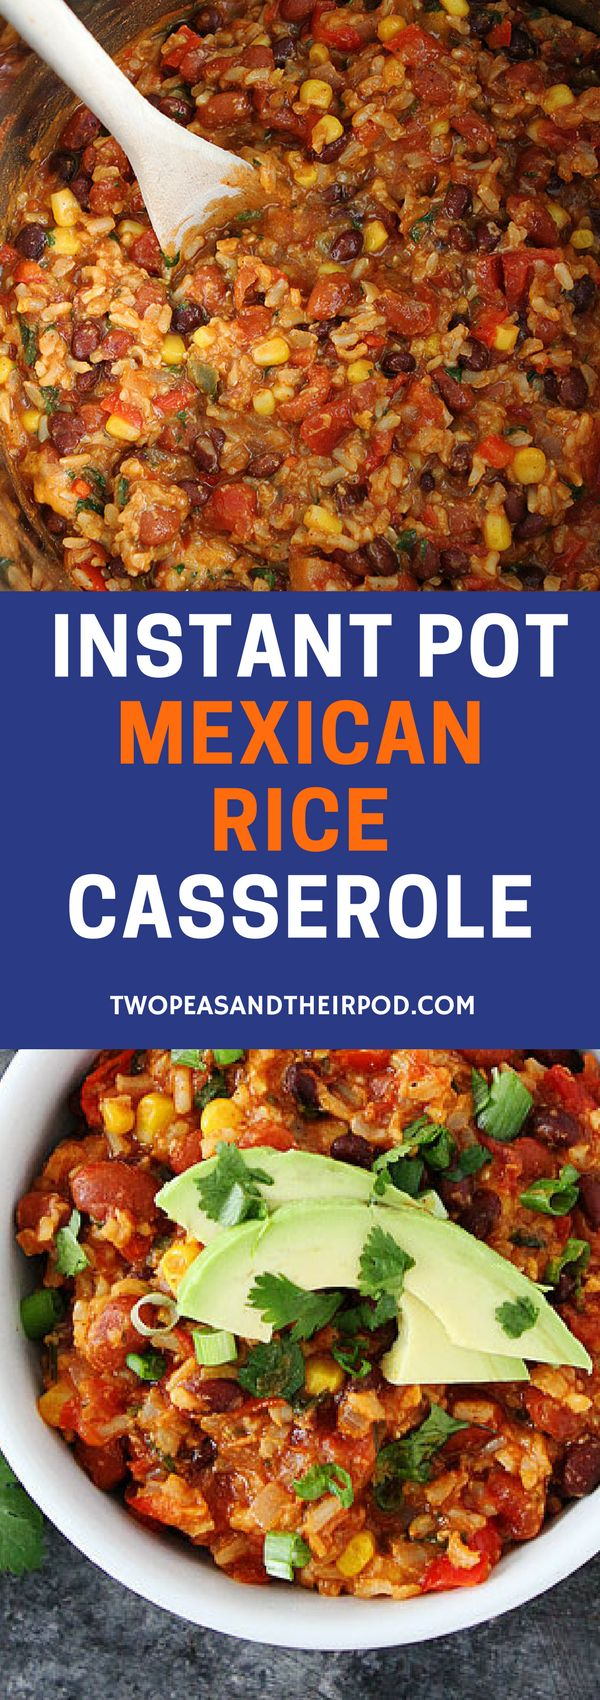 Instant Pot Mexican Rice Casserole | Two Peas & Their Pod